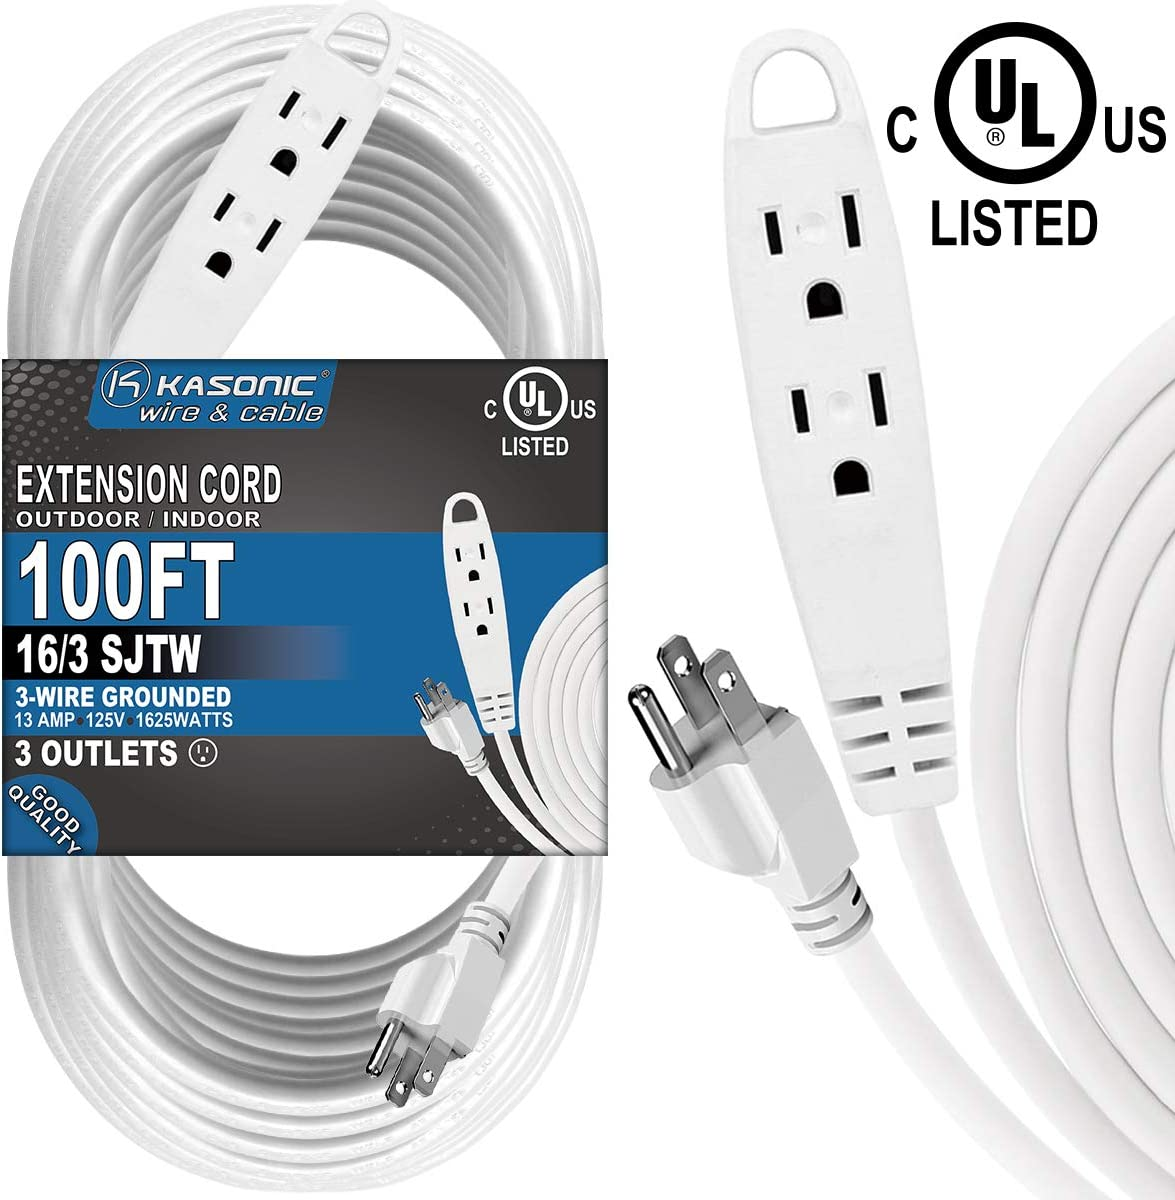 100-Feet 3 Outlet Extension Cord, Kasonic UL Listed, 16/3 SJTW 3-Wire Grounded, 10 Amp 125 V 1625 Watts, Multi-Outlet Indoor/Outdoor Use